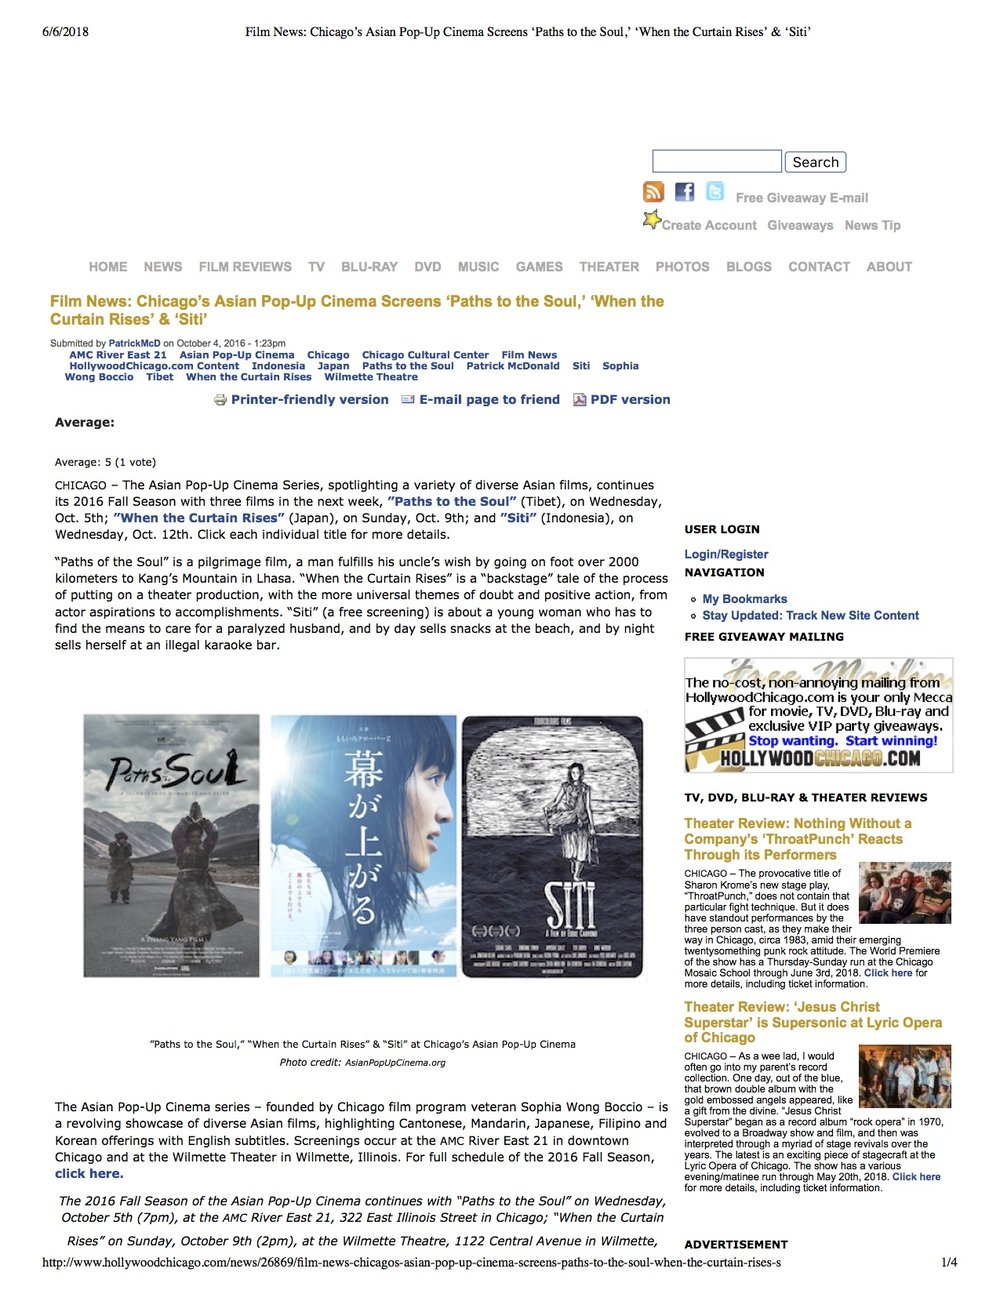 1Film News_ Chicago's Asian Pop-Up Cinema Screens 'Paths to the Soul,' 'When the Curtain Rises' & 'Siti'.jpg